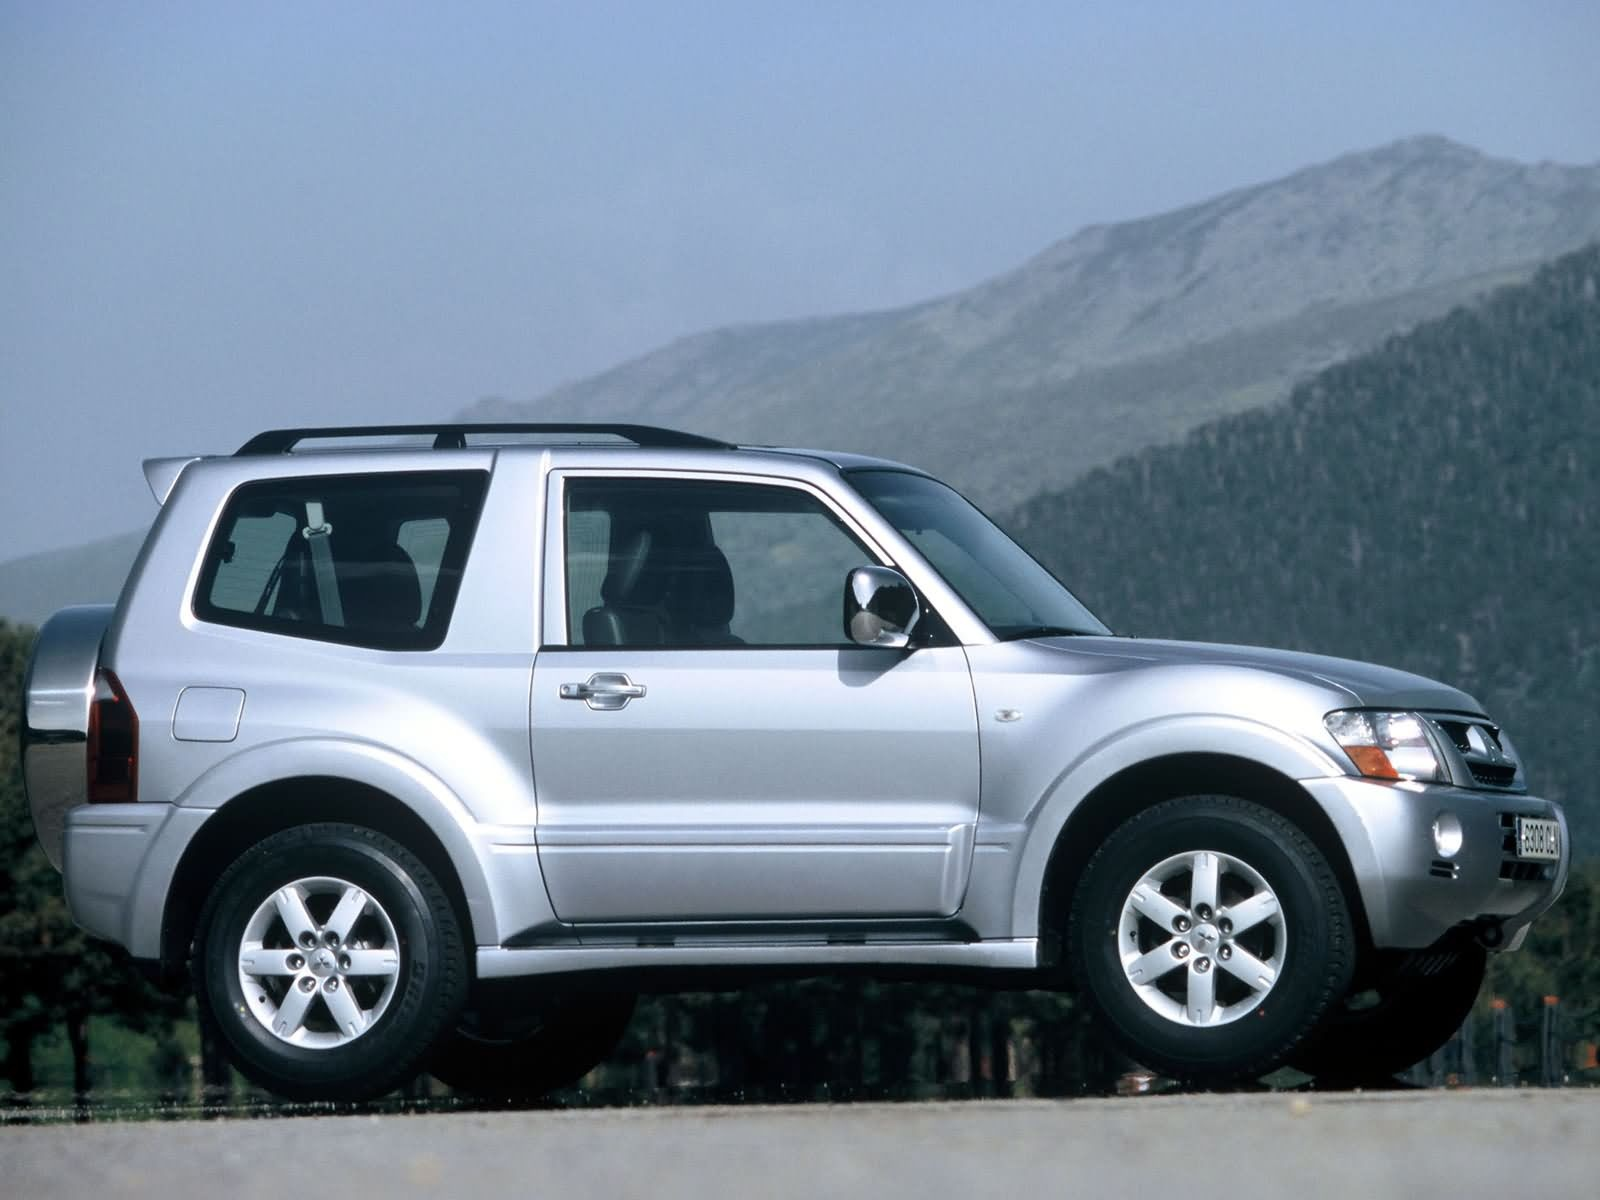 mitsubishi montero questions - did they make a 2-door 1999 montero